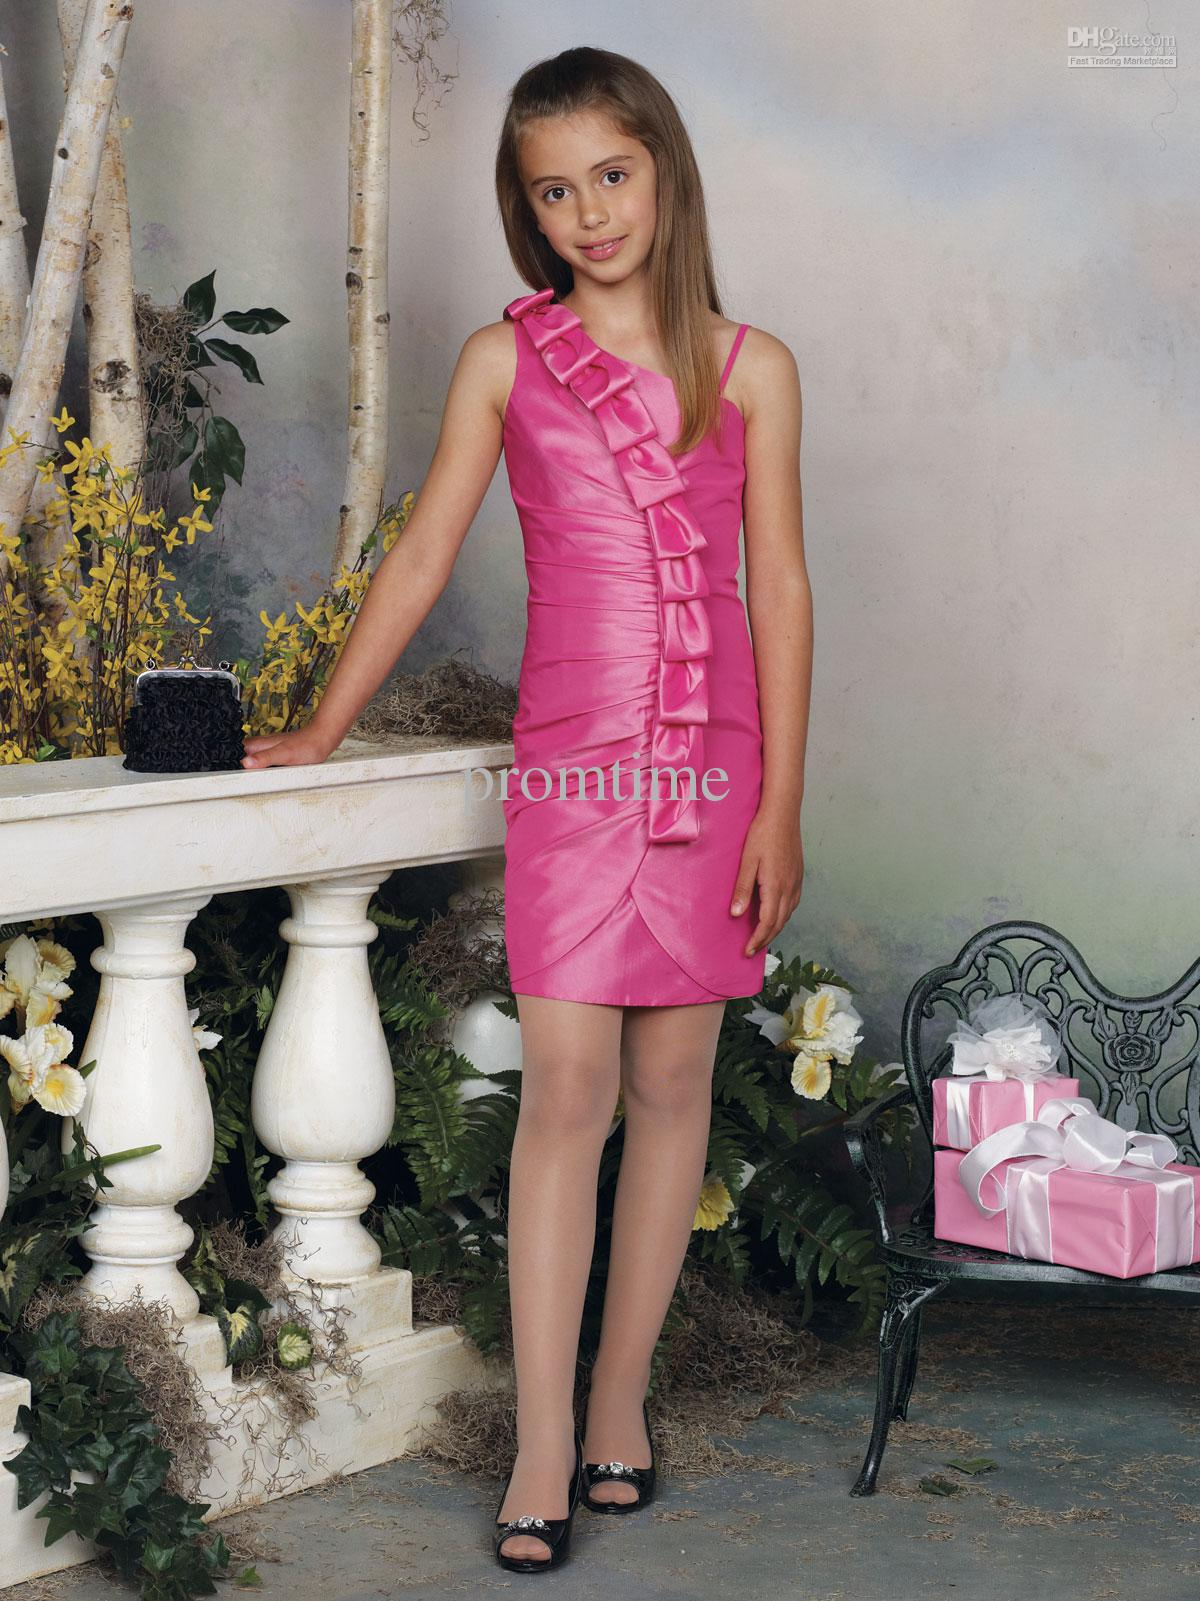 Very young little girls dress matchless